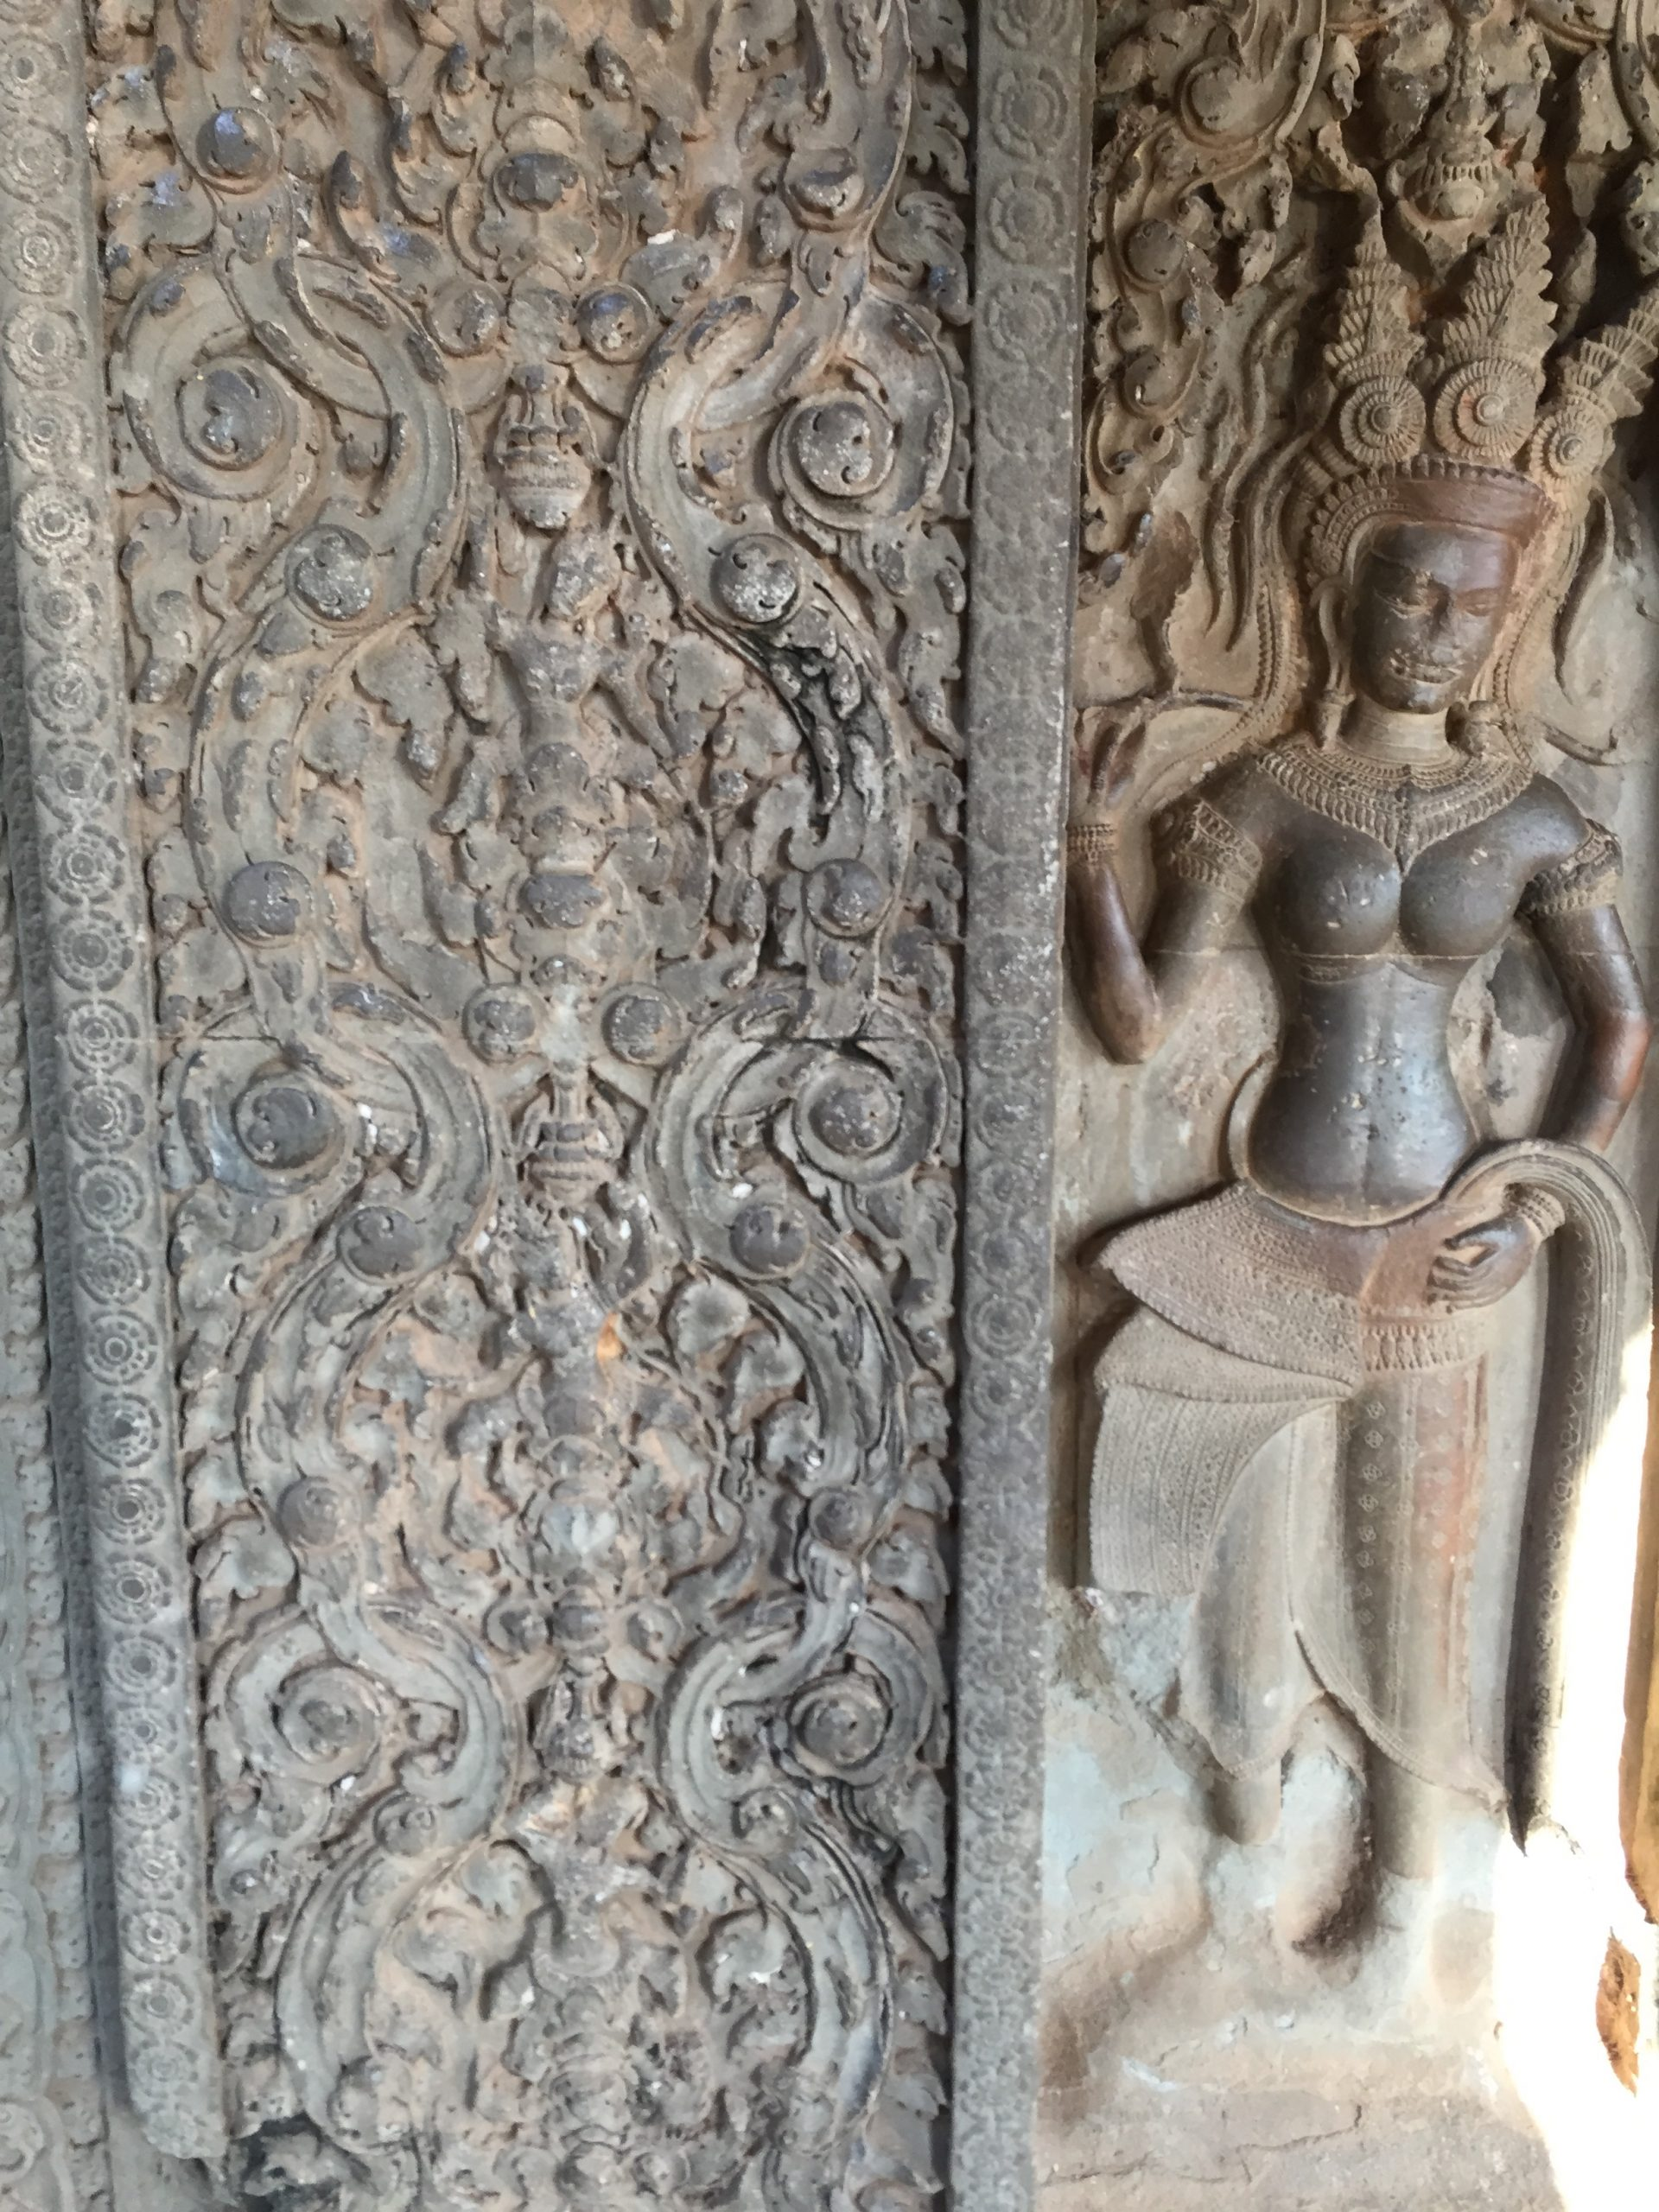 An art sculpture at Angkor Wat, Siem Reap